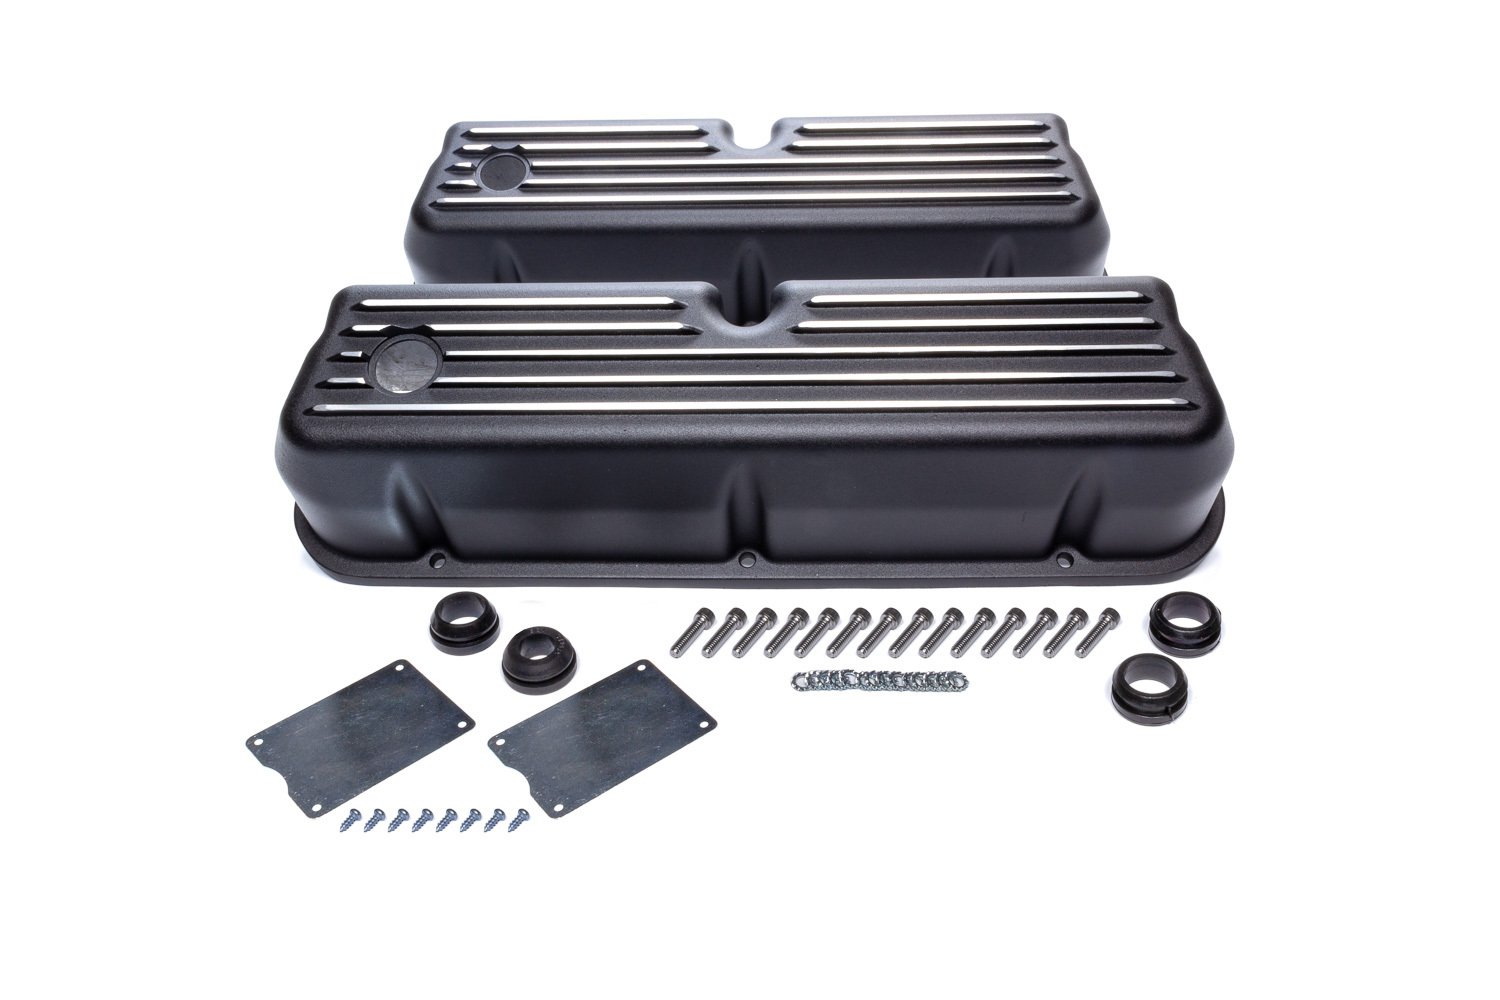 Racing Power Company R6175BK Valve Cover, Tall, 3-7/16 in Height, Baffled, Breather Holes, Hardware Included, Top Finned, Aluminum, Black Paint, Small Block Ford, Pair